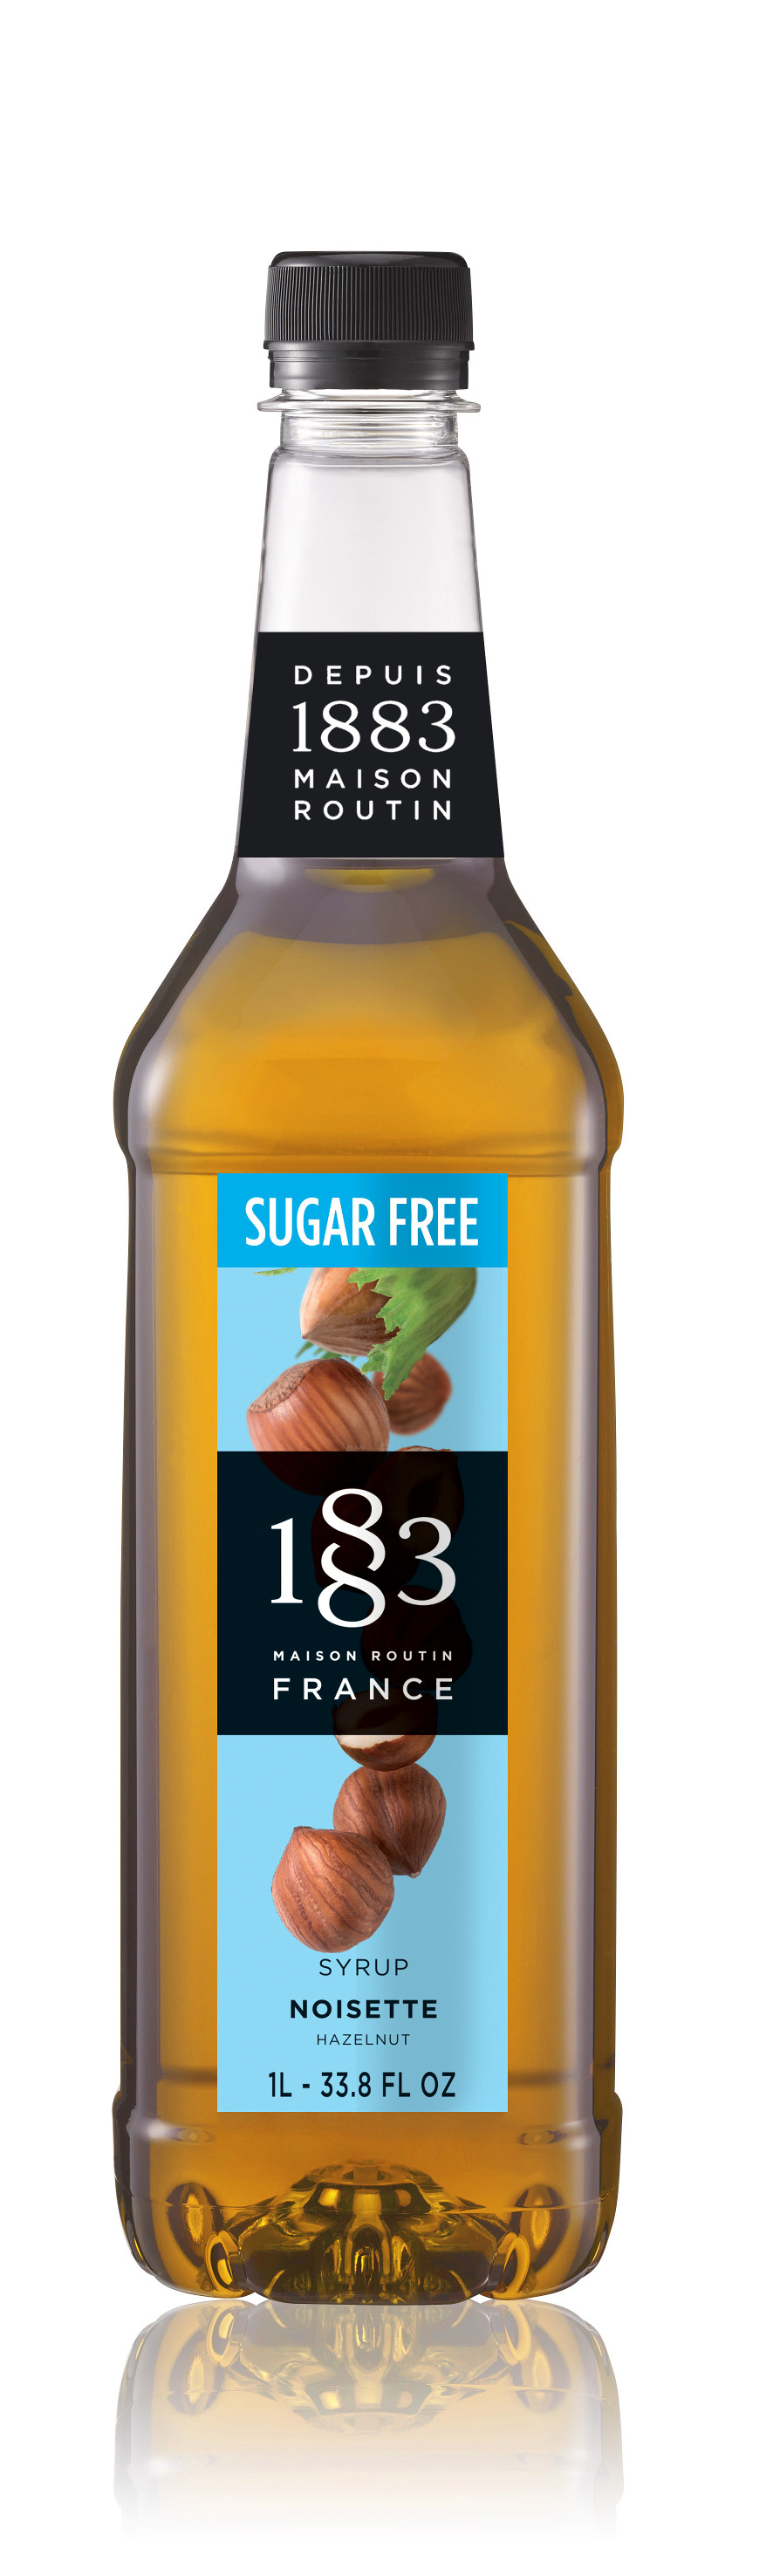 1883 Sugar Free Syrup Hazelnut  1L PET Plastic Bottle